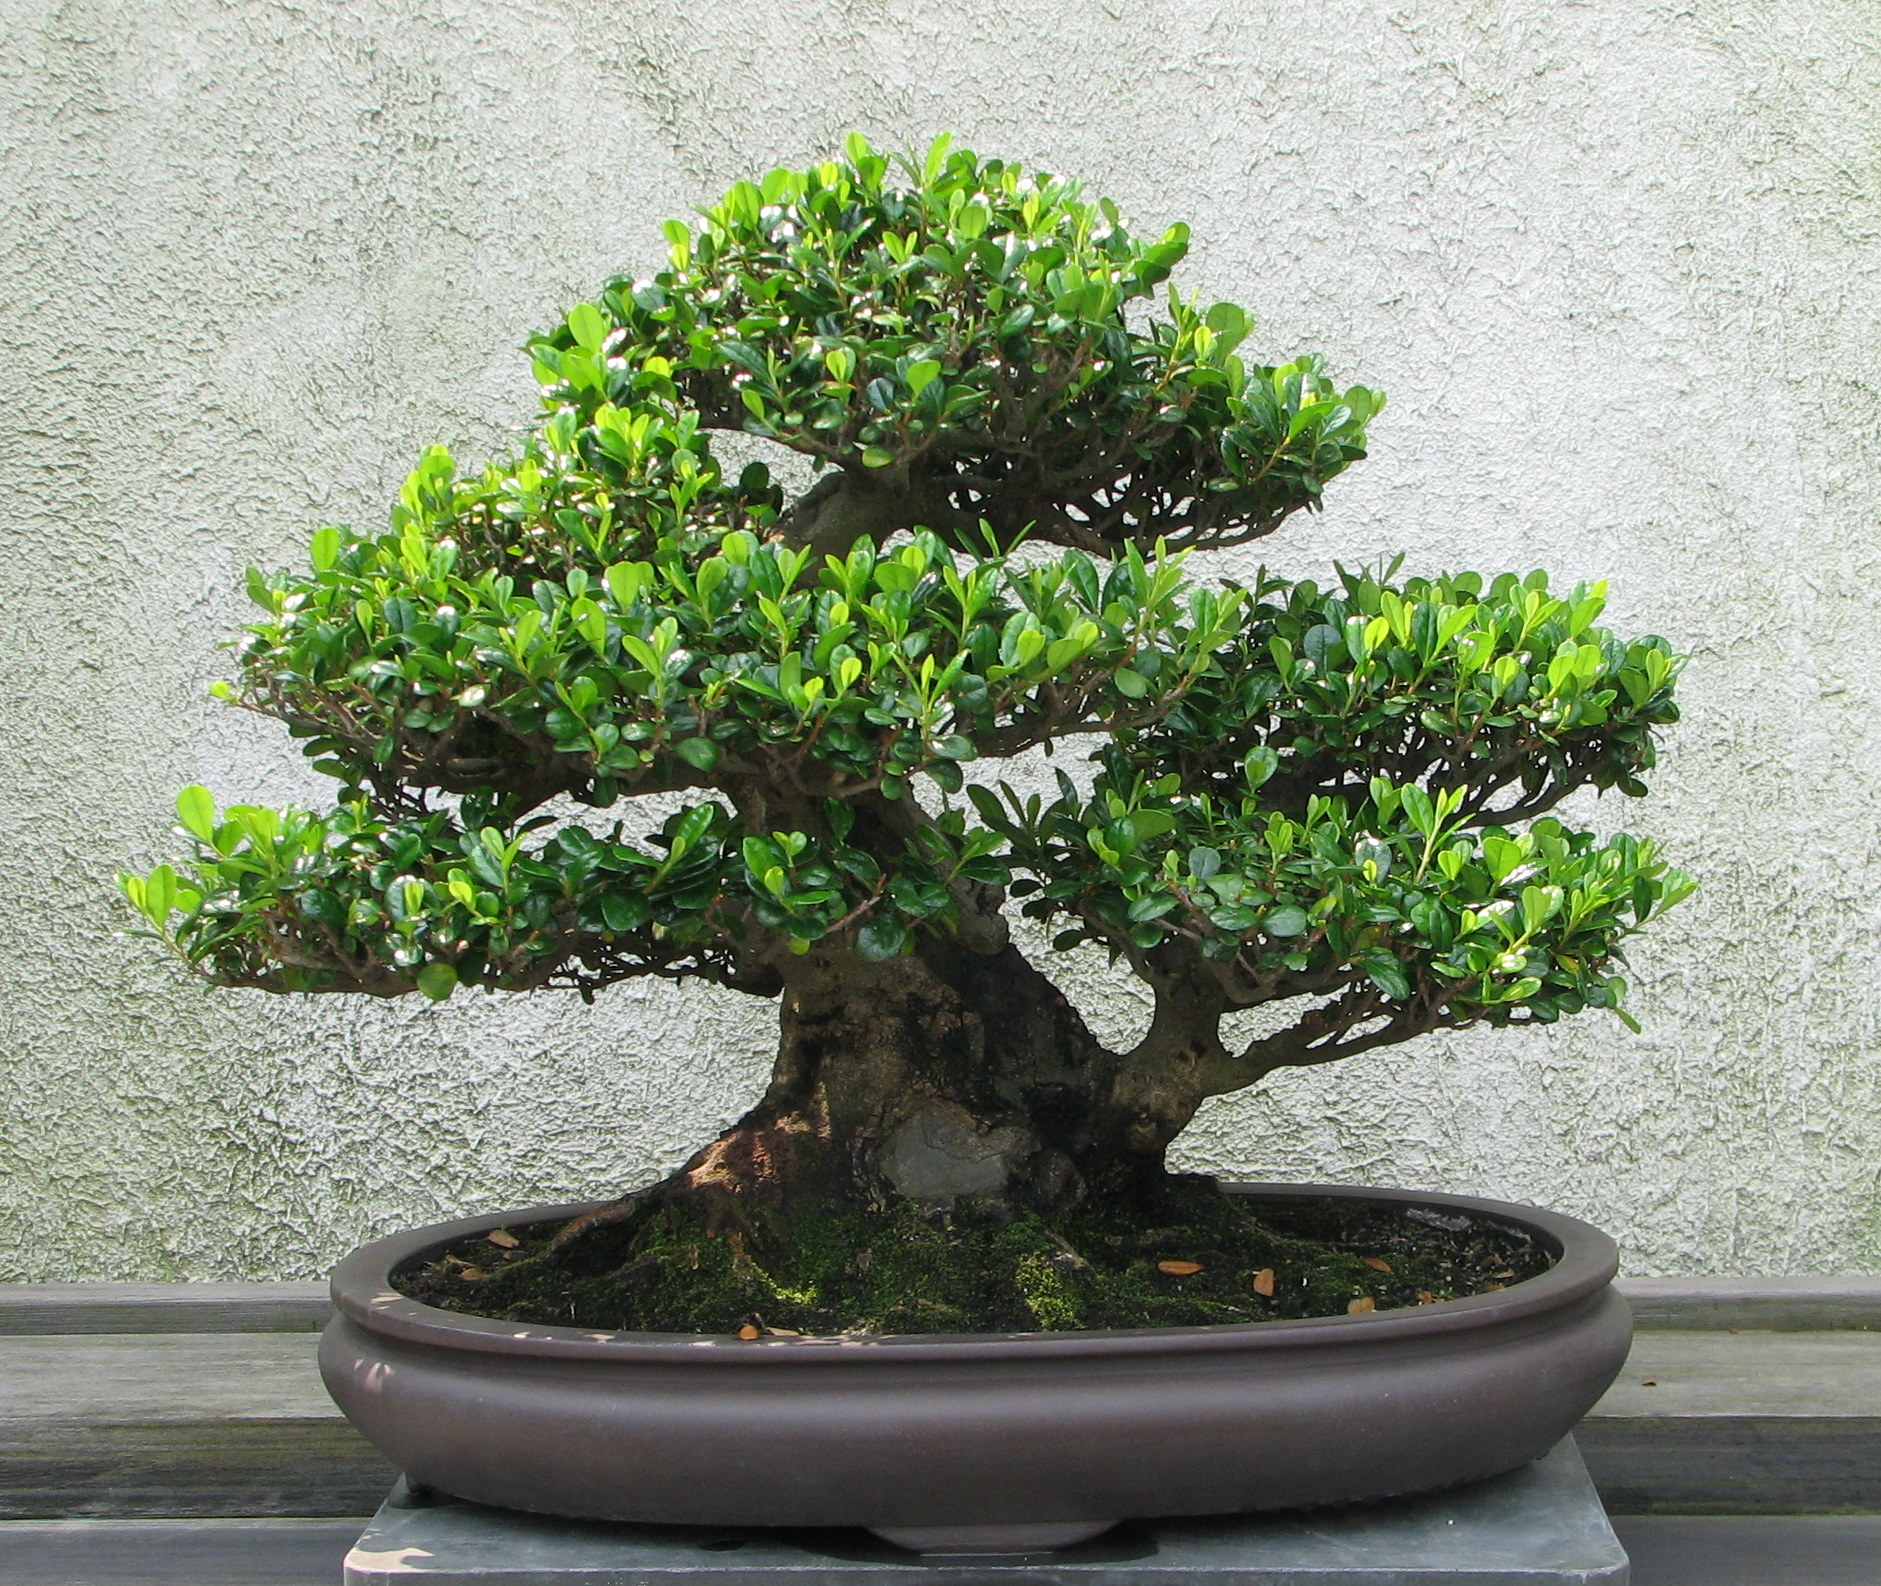 Bonsai - Wikipedia, the free encyclopedia